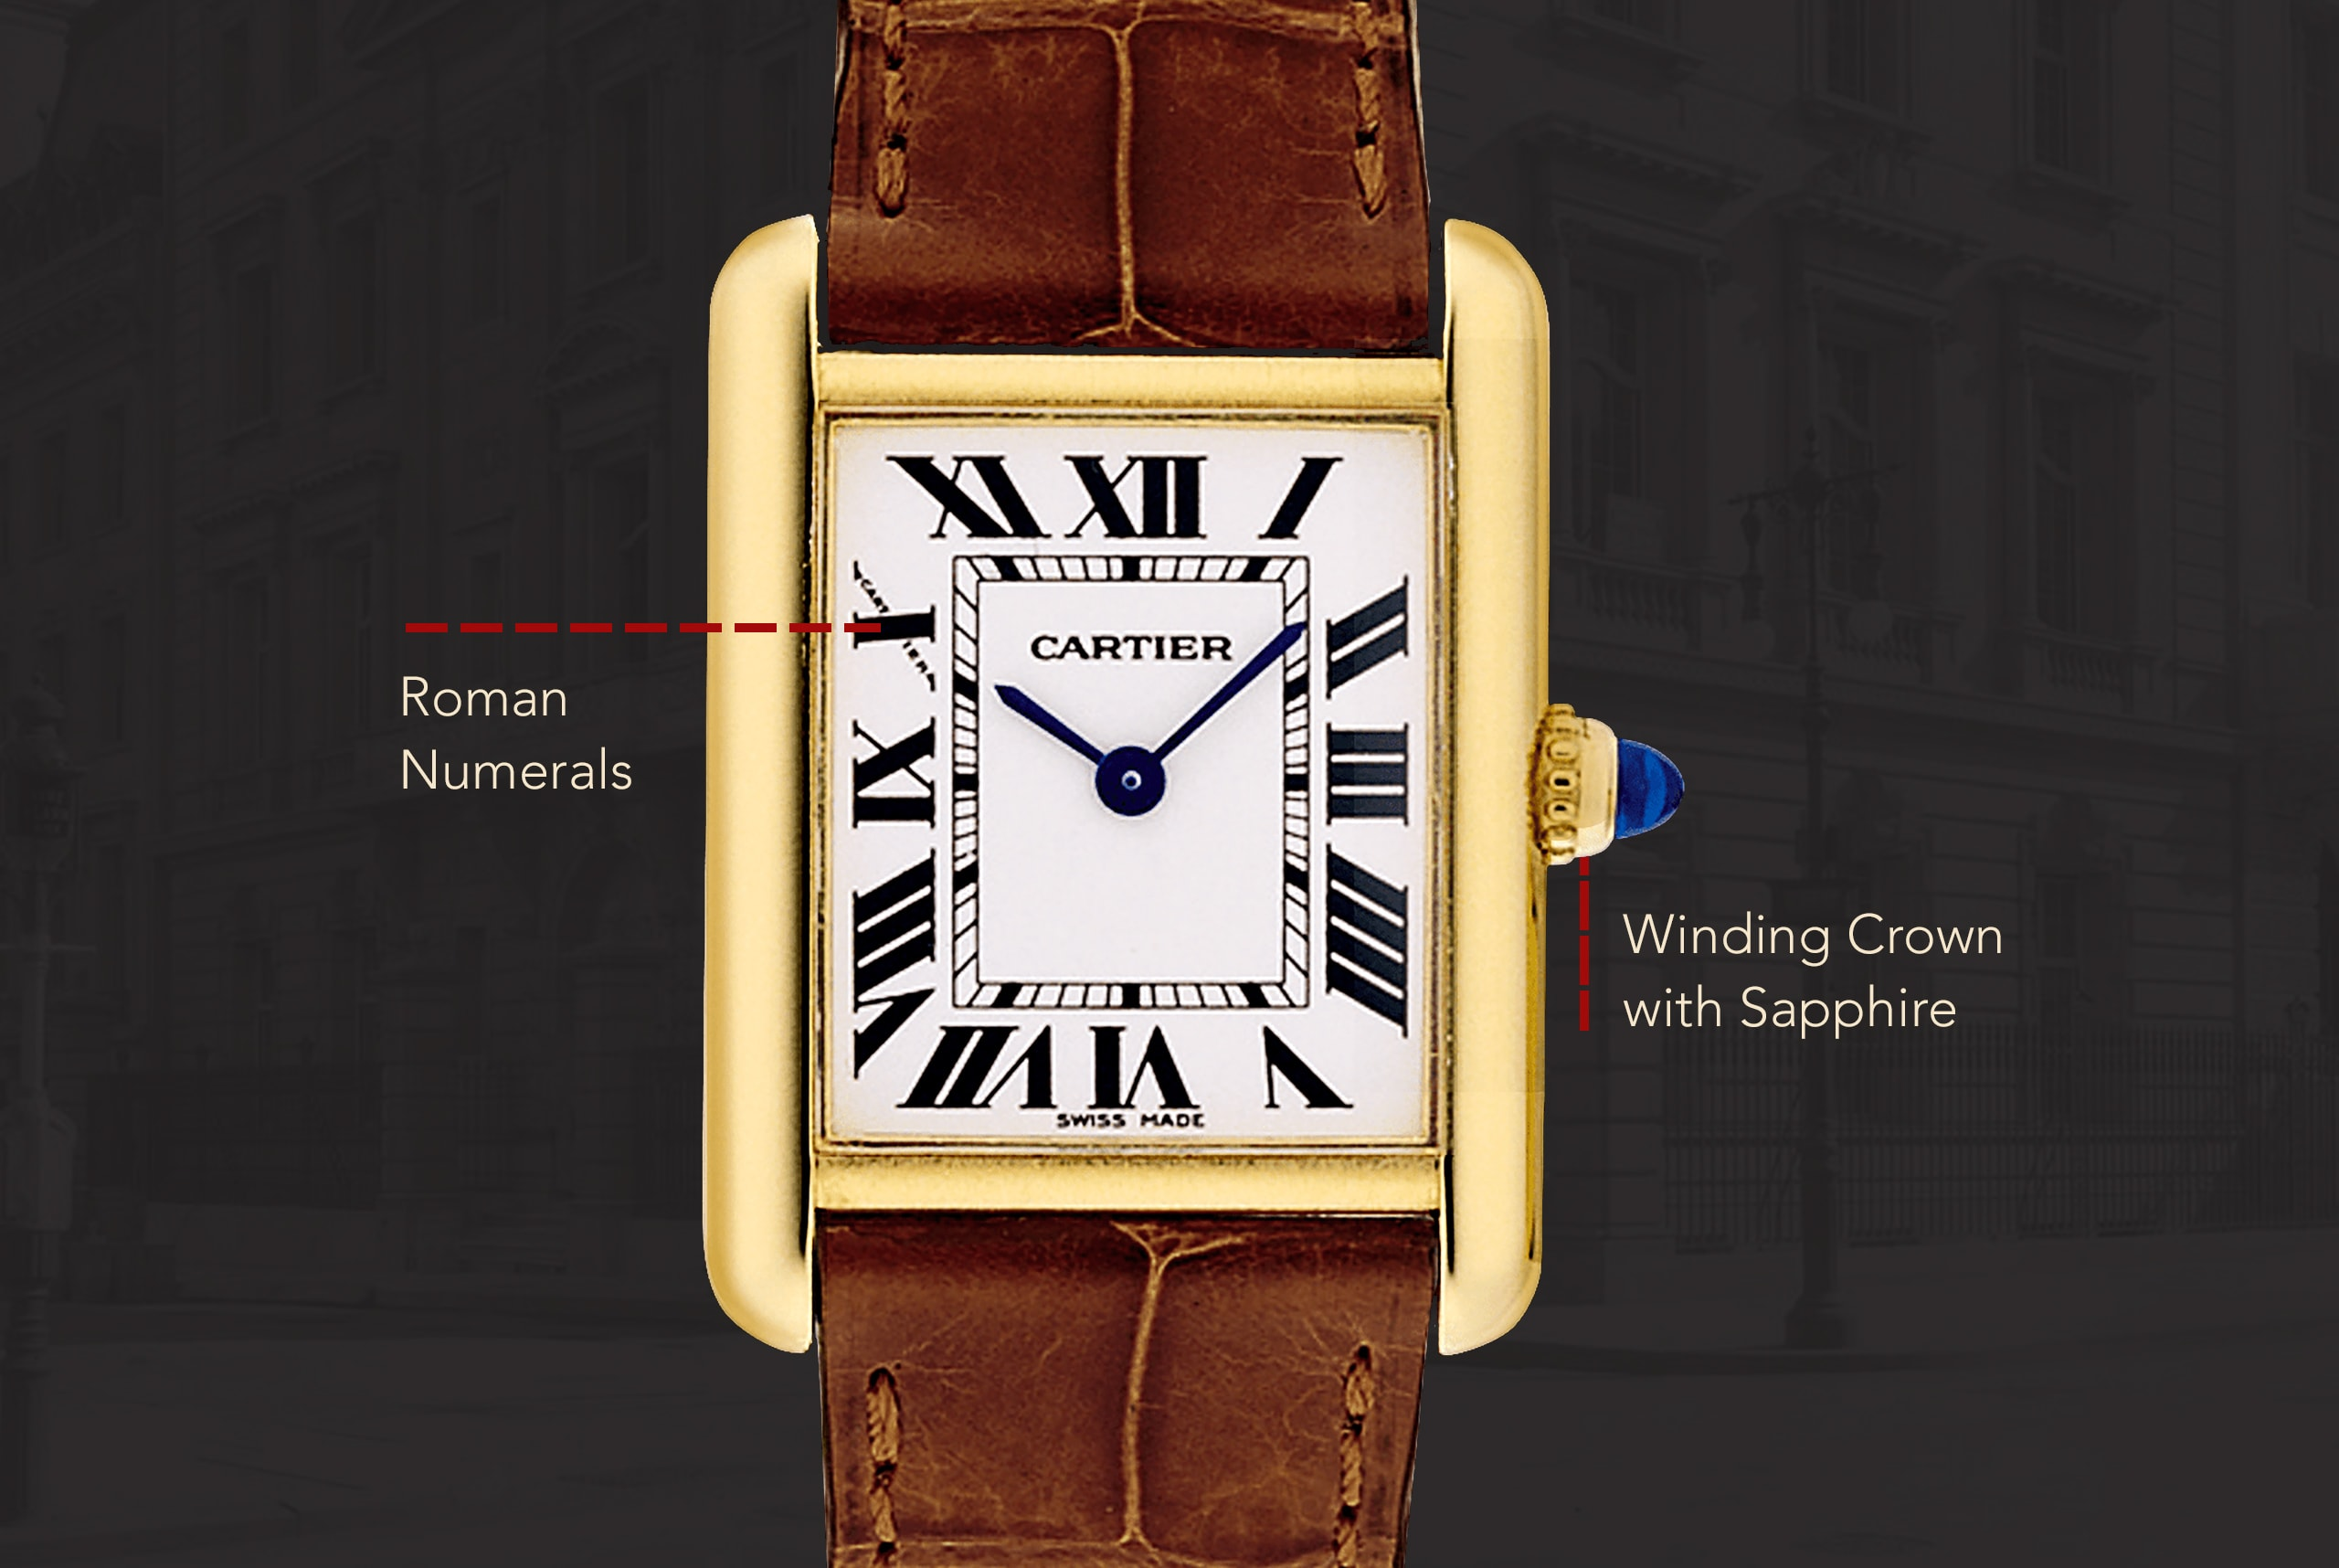 cartier online watches eco christie spring christies s tank time ladys platinum asymmetric lady